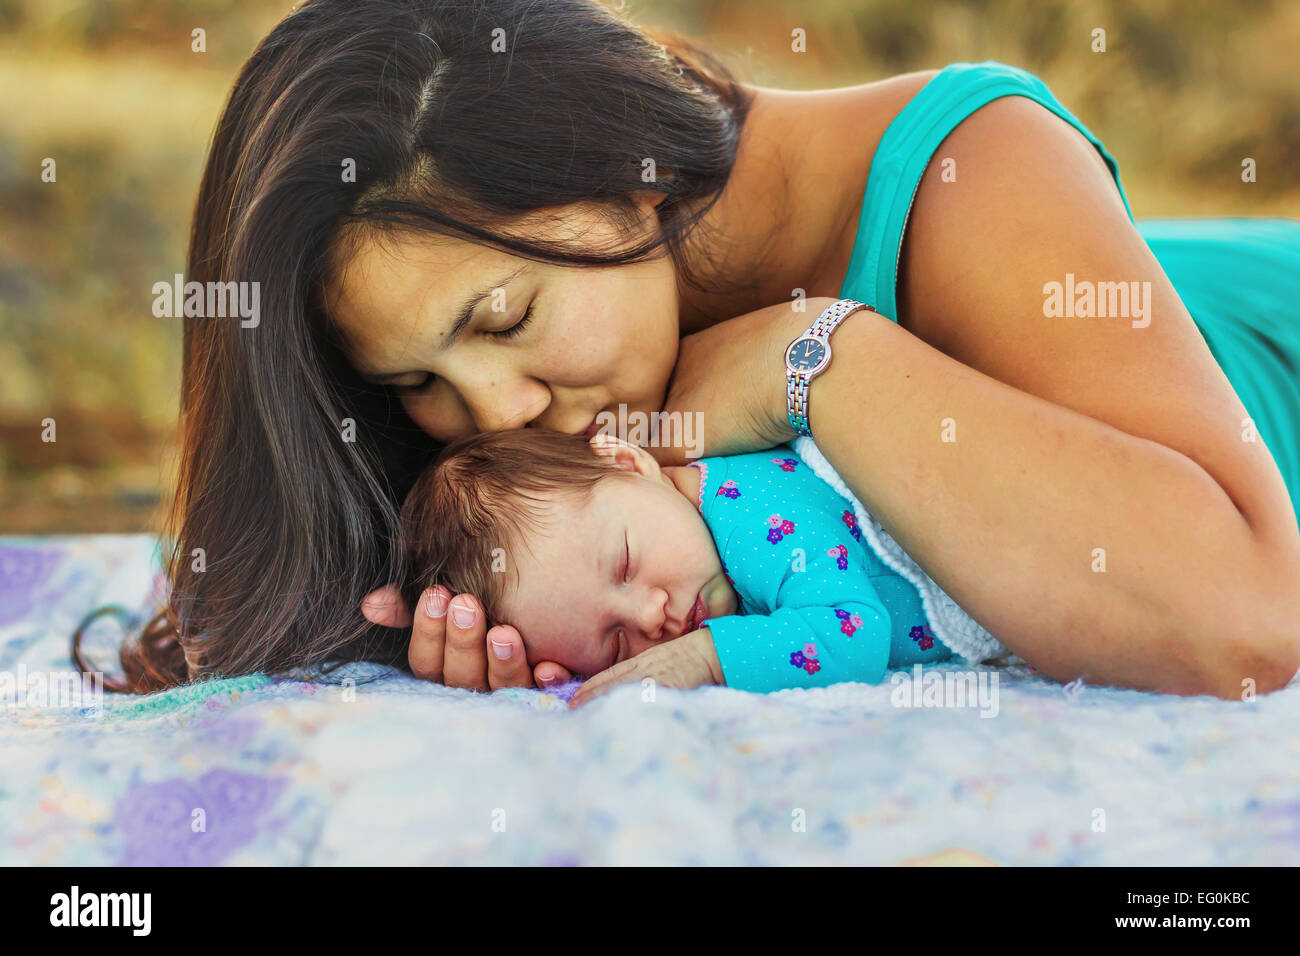 Mother kissing her newborn daughter - Stock Image